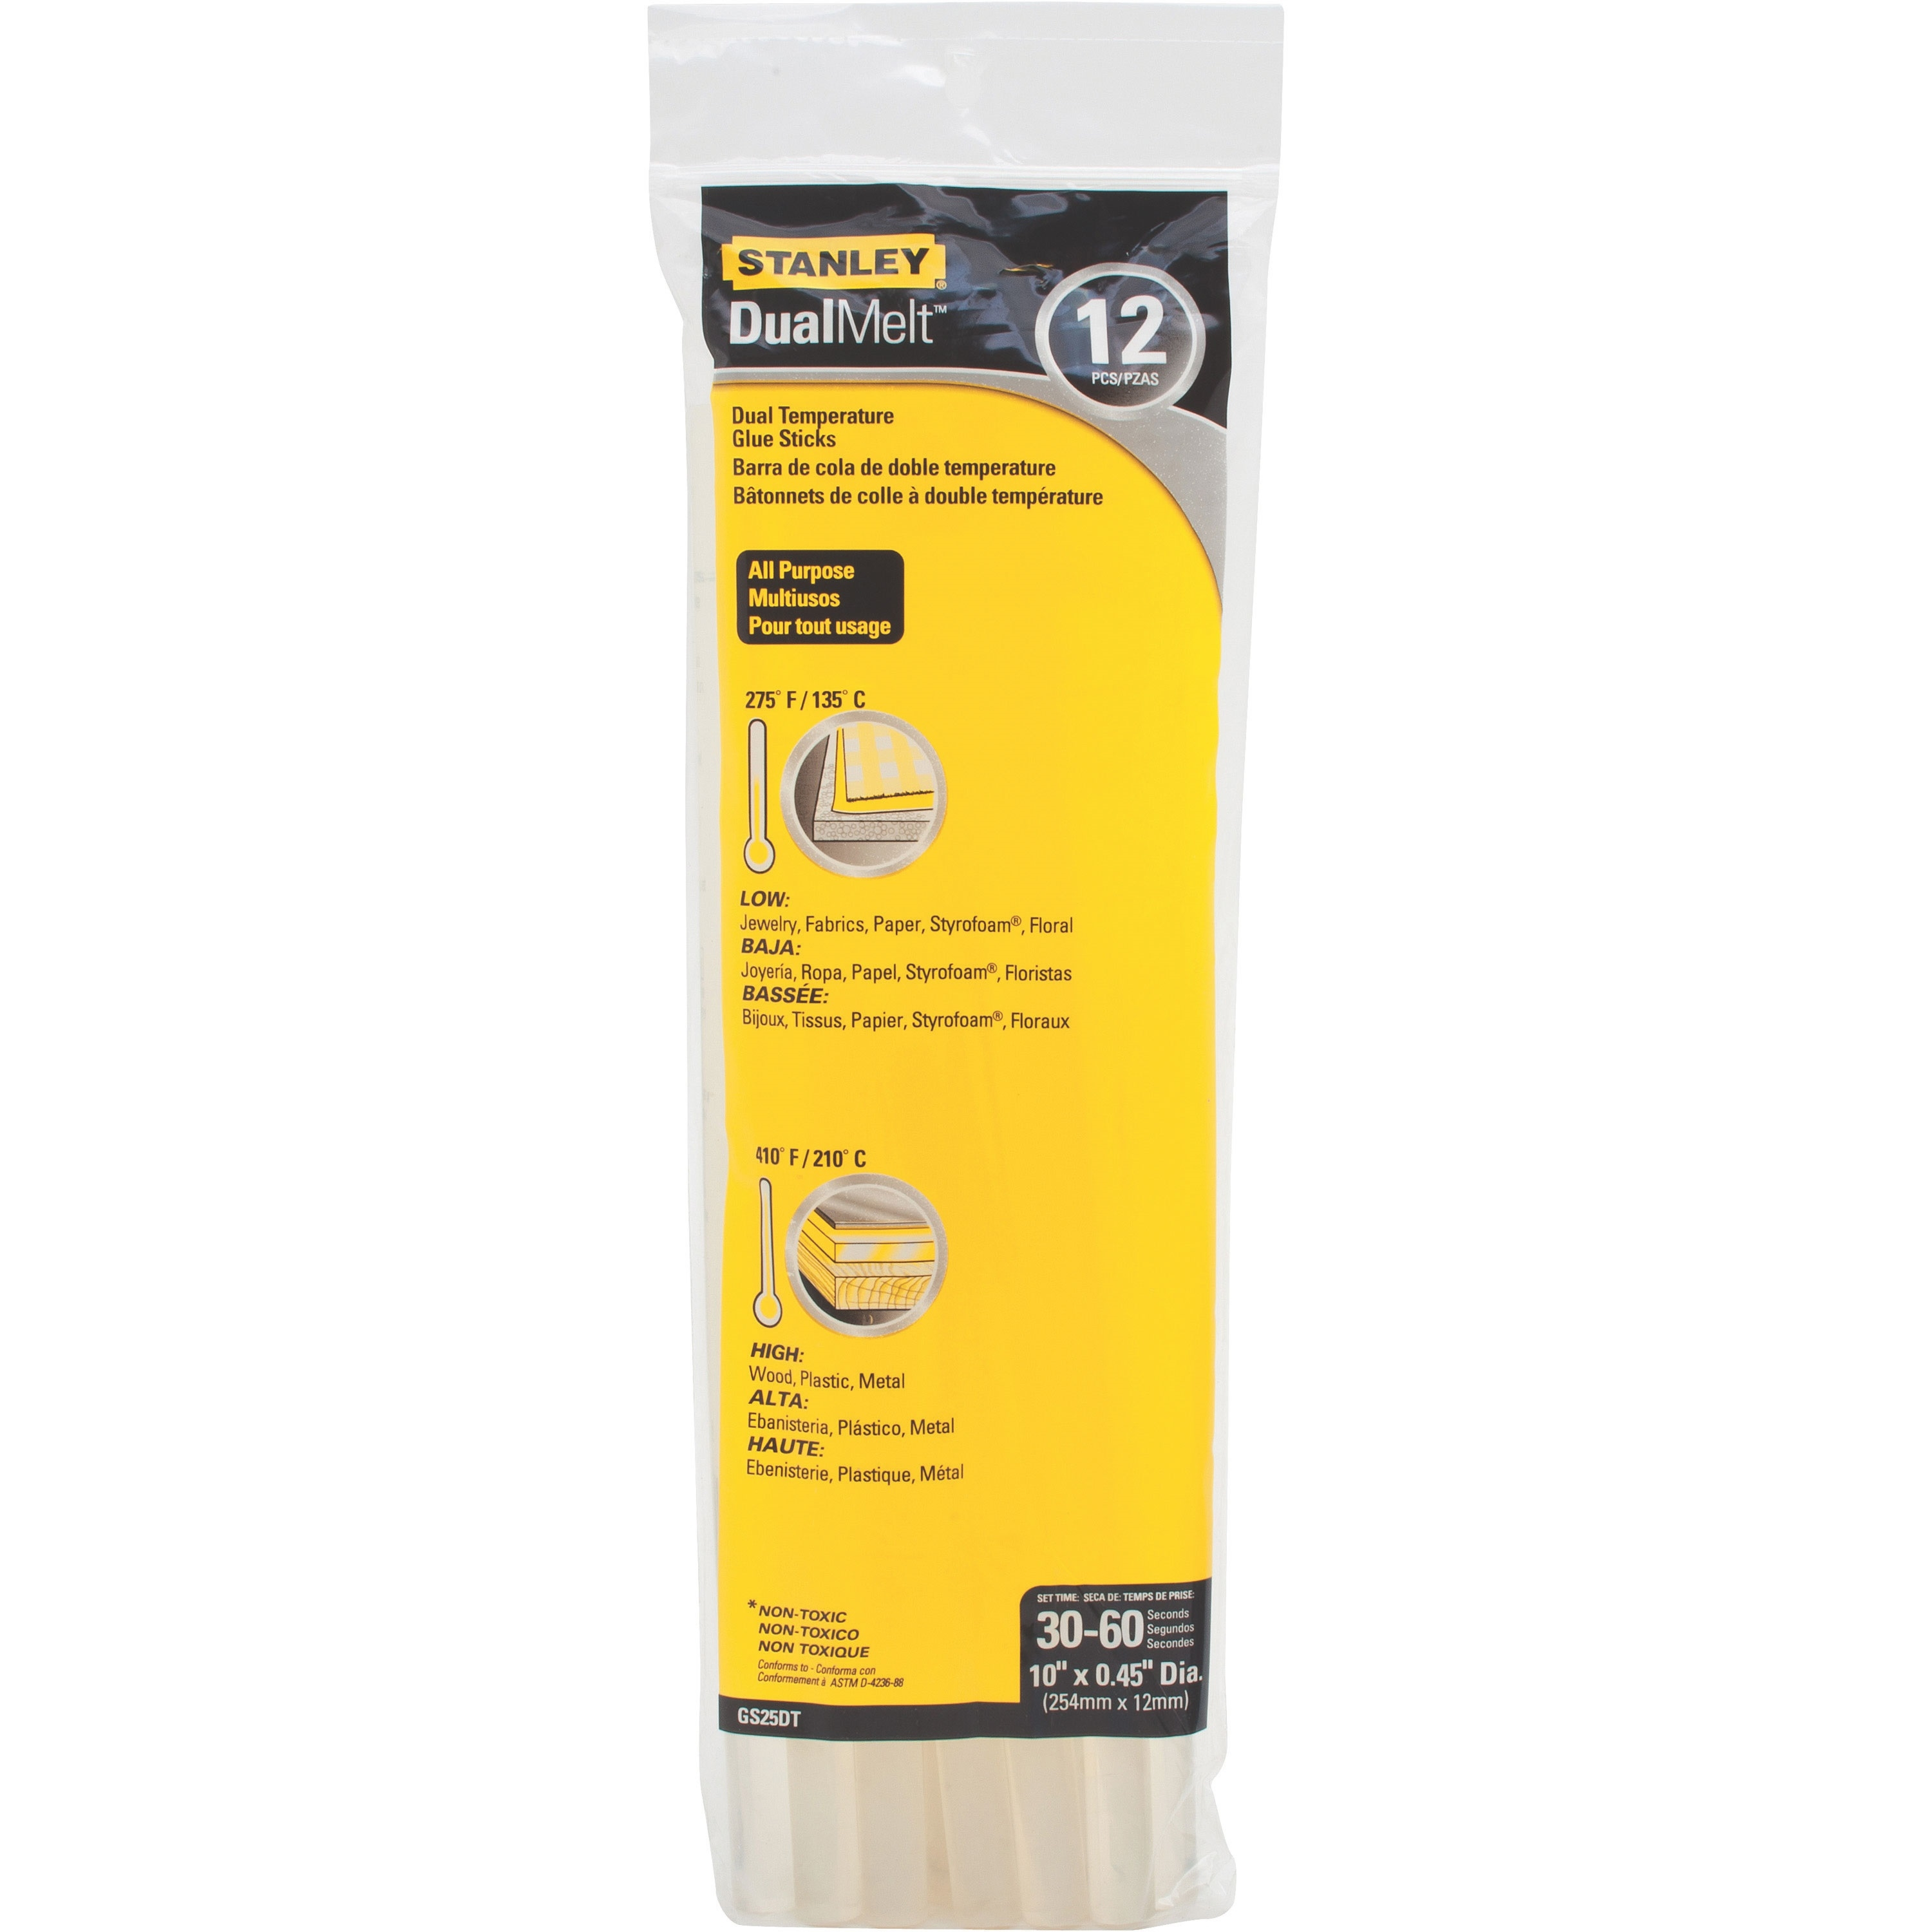 Picture of STANLEY DualMelt GS25DT Glue Stick, Stick, Resin Odor, Opaque